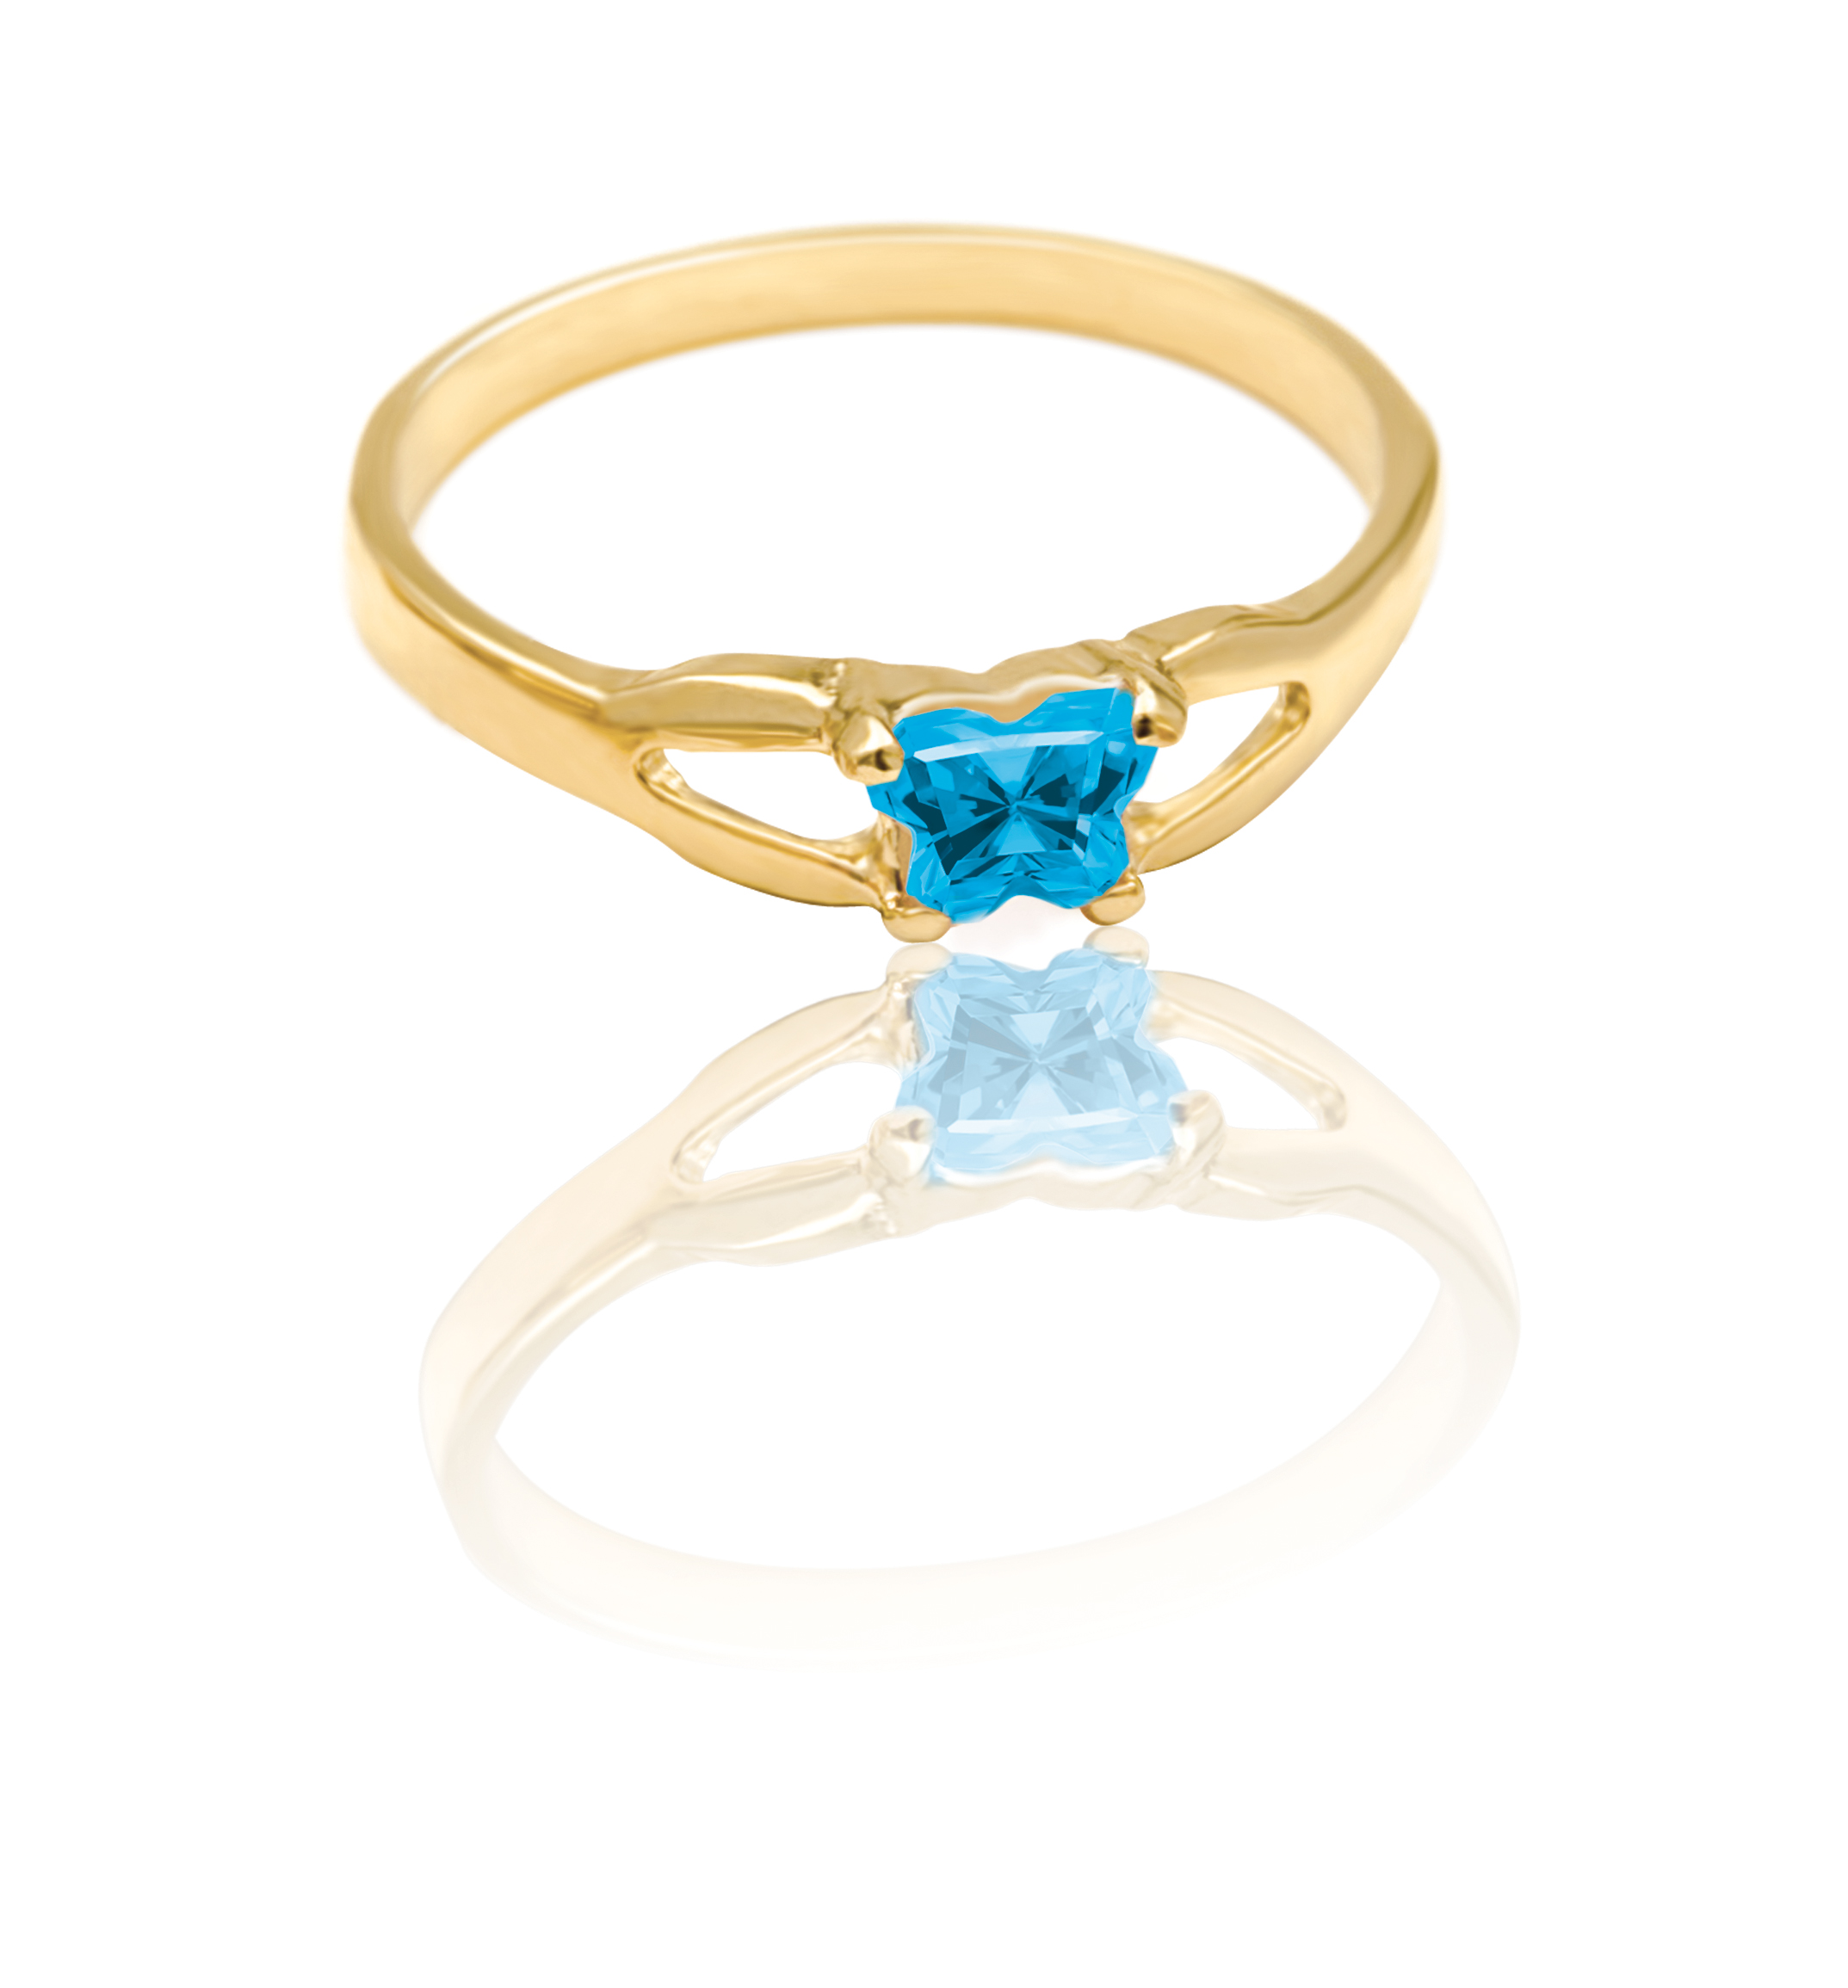 ring for child - 10K yellow Gold &  Blue cubic zirconia (month of December)*